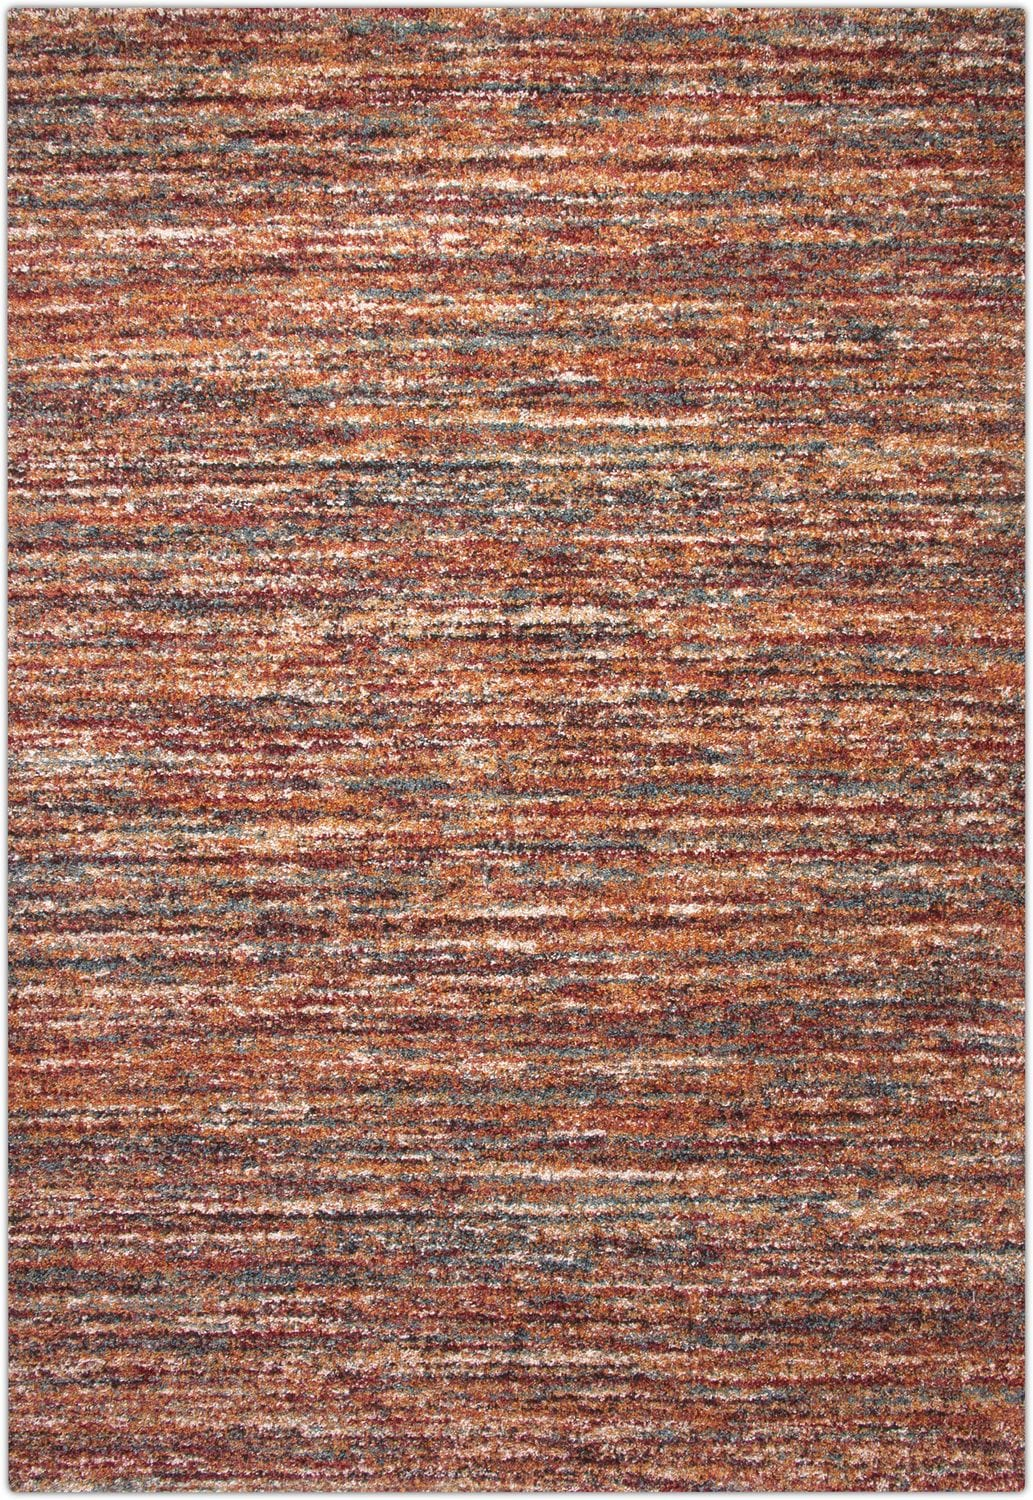 Rugs - Granada Area Rug - Red